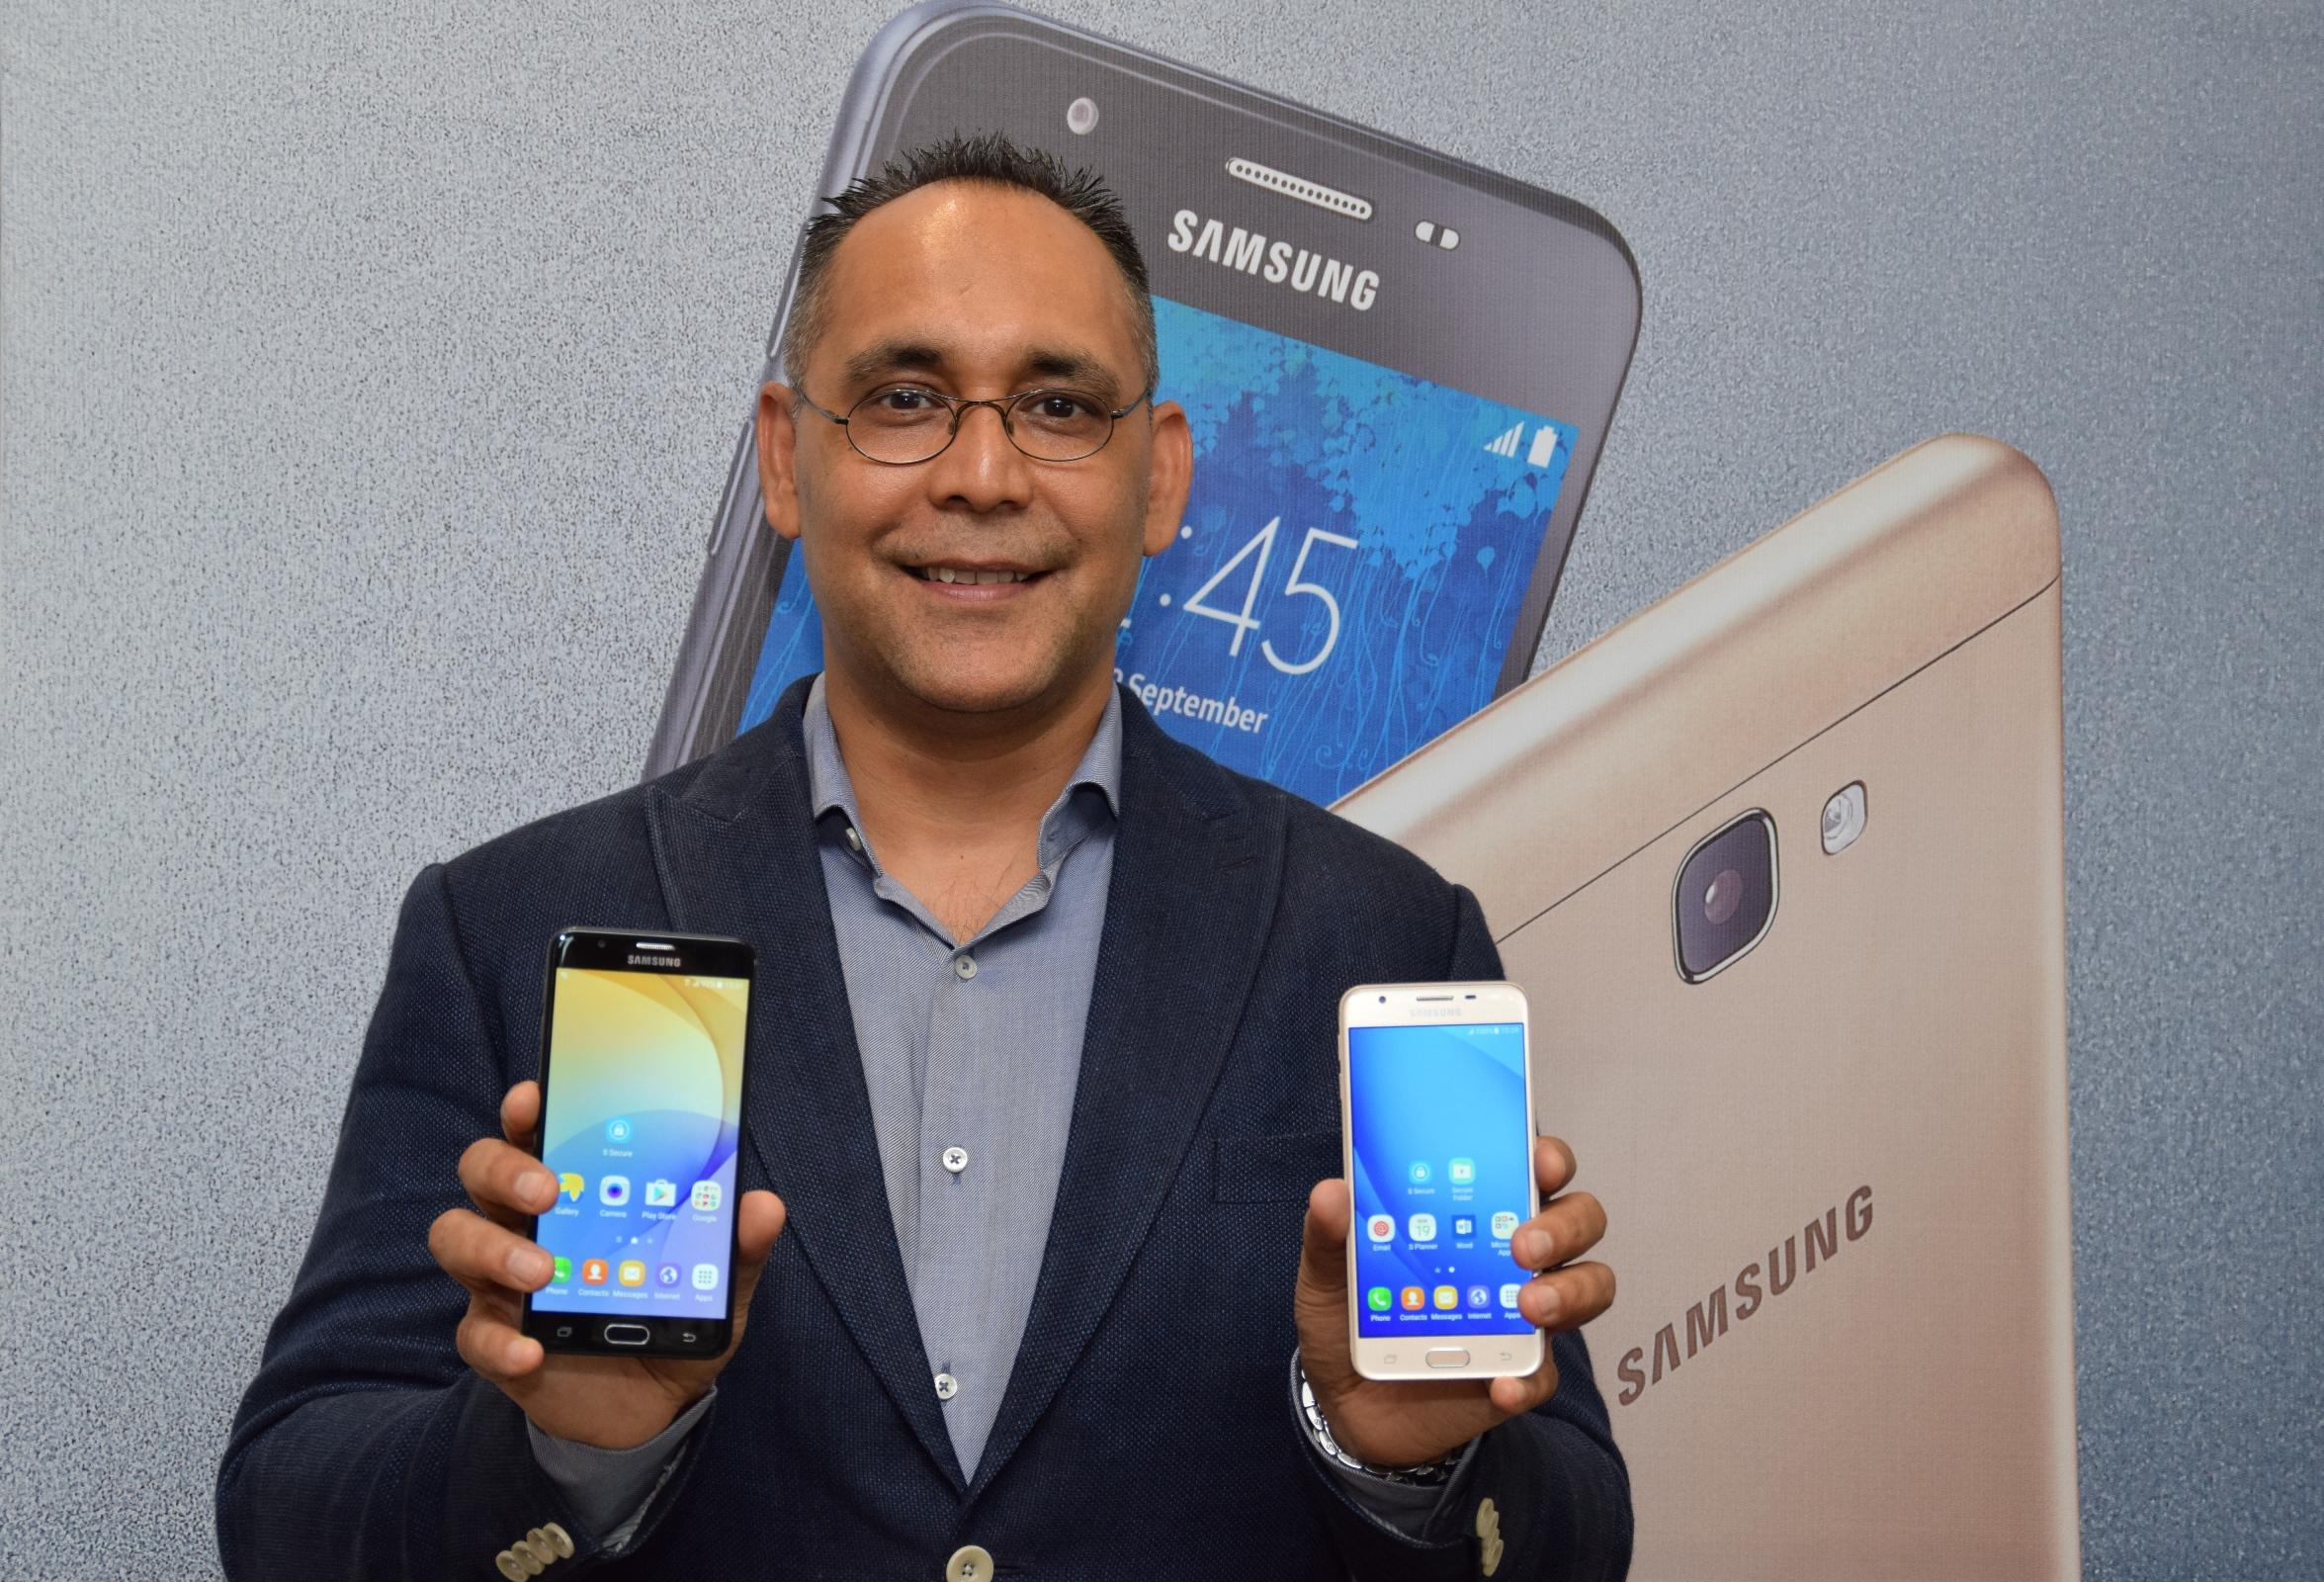 Samsung Unveils Galaxy J7 Prime And Galaxy J5 Prime With Innovative